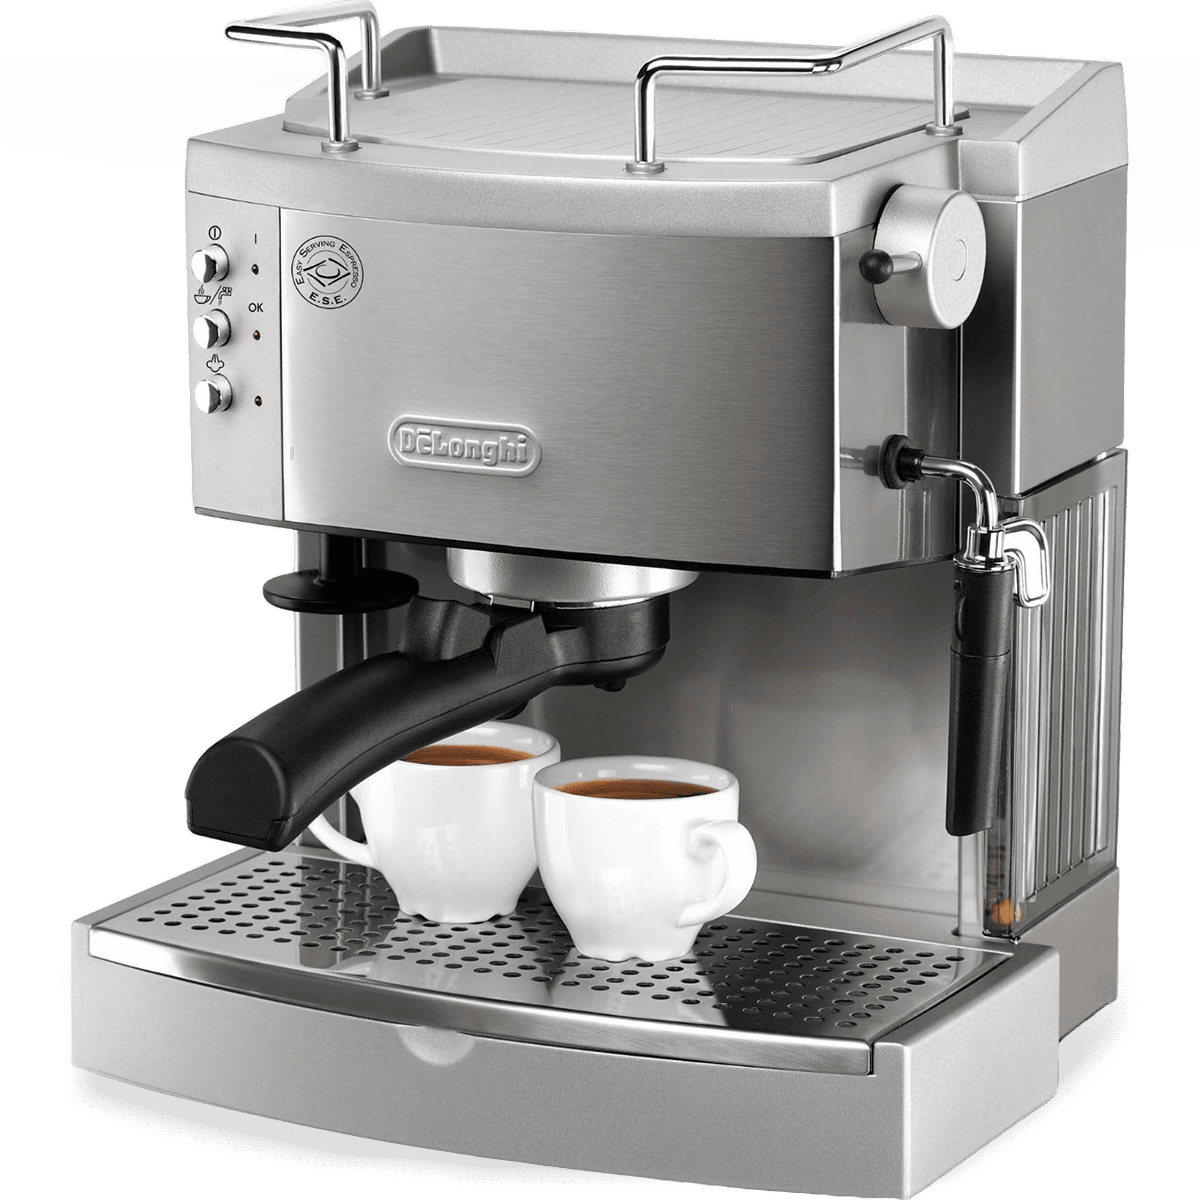 Delonghi Manual Espresso Machine Quench Essentials